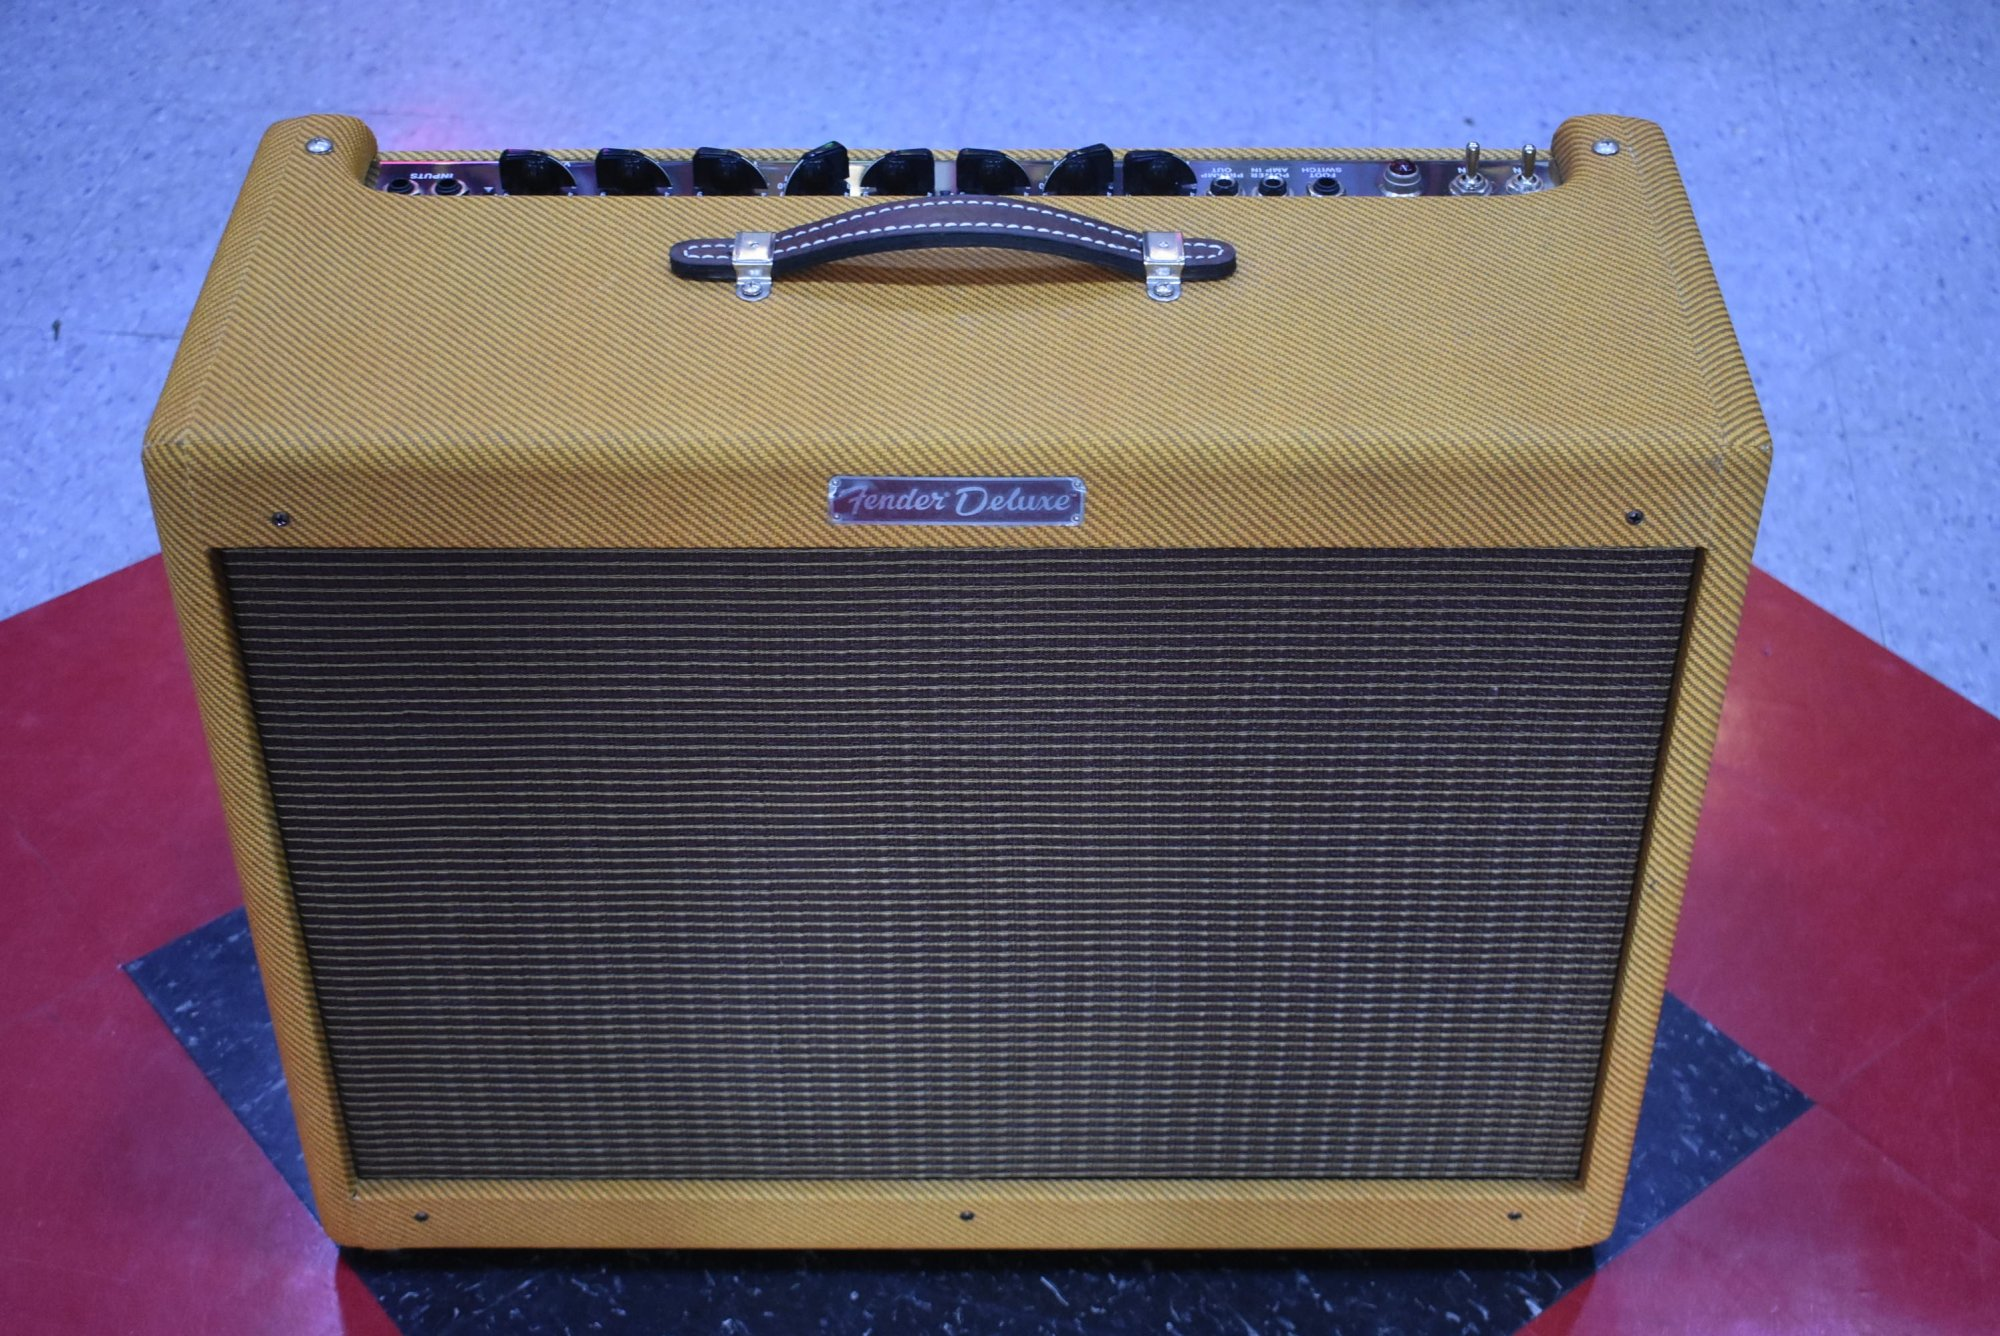 2012 Fender Limited Edition Blues Deluxe Smokey Tweed